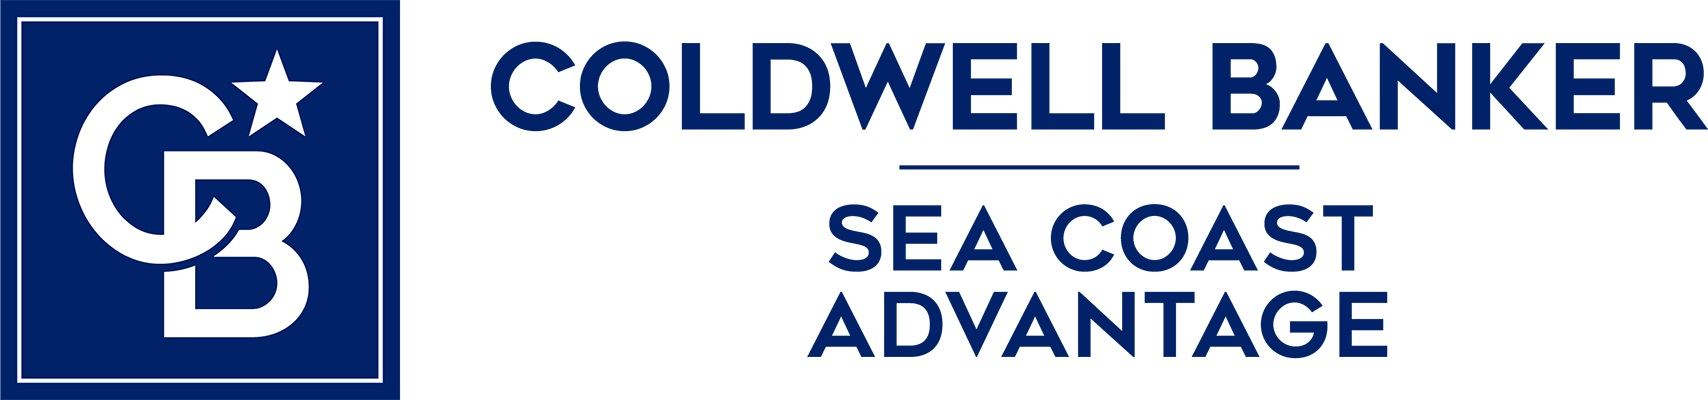 Christina Asbury - Coldwell Banker Sea Coast Advantage Realty